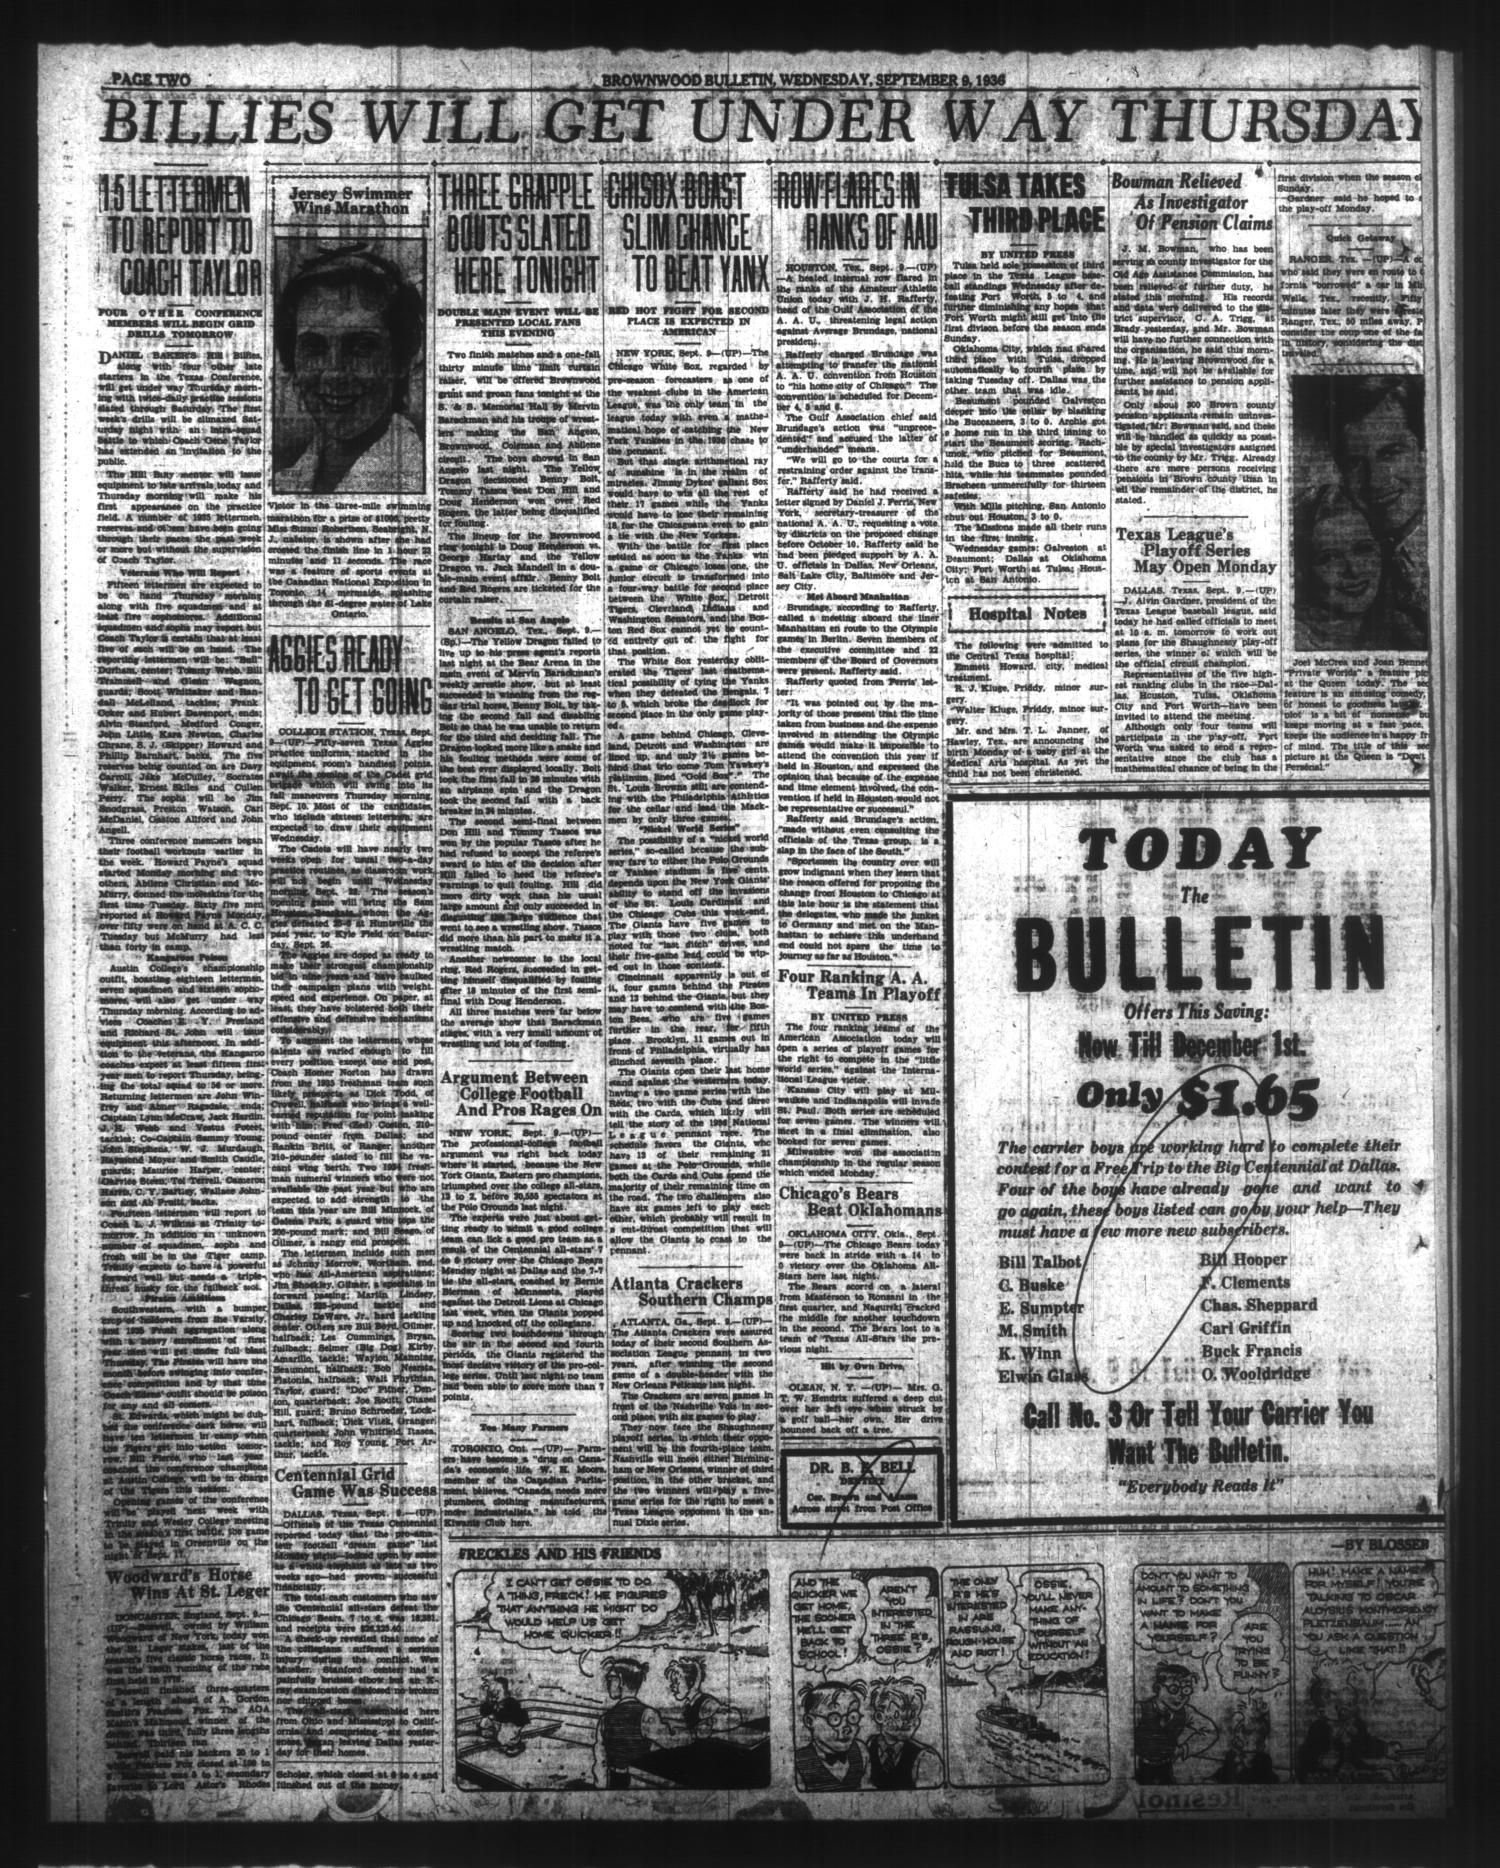 Brownwood Bulletin (Brownwood, Tex.), Vol. 36, No. 281, Ed. 1 Wednesday, September 9, 1936                                                                                                      [Sequence #]: 2 of 6